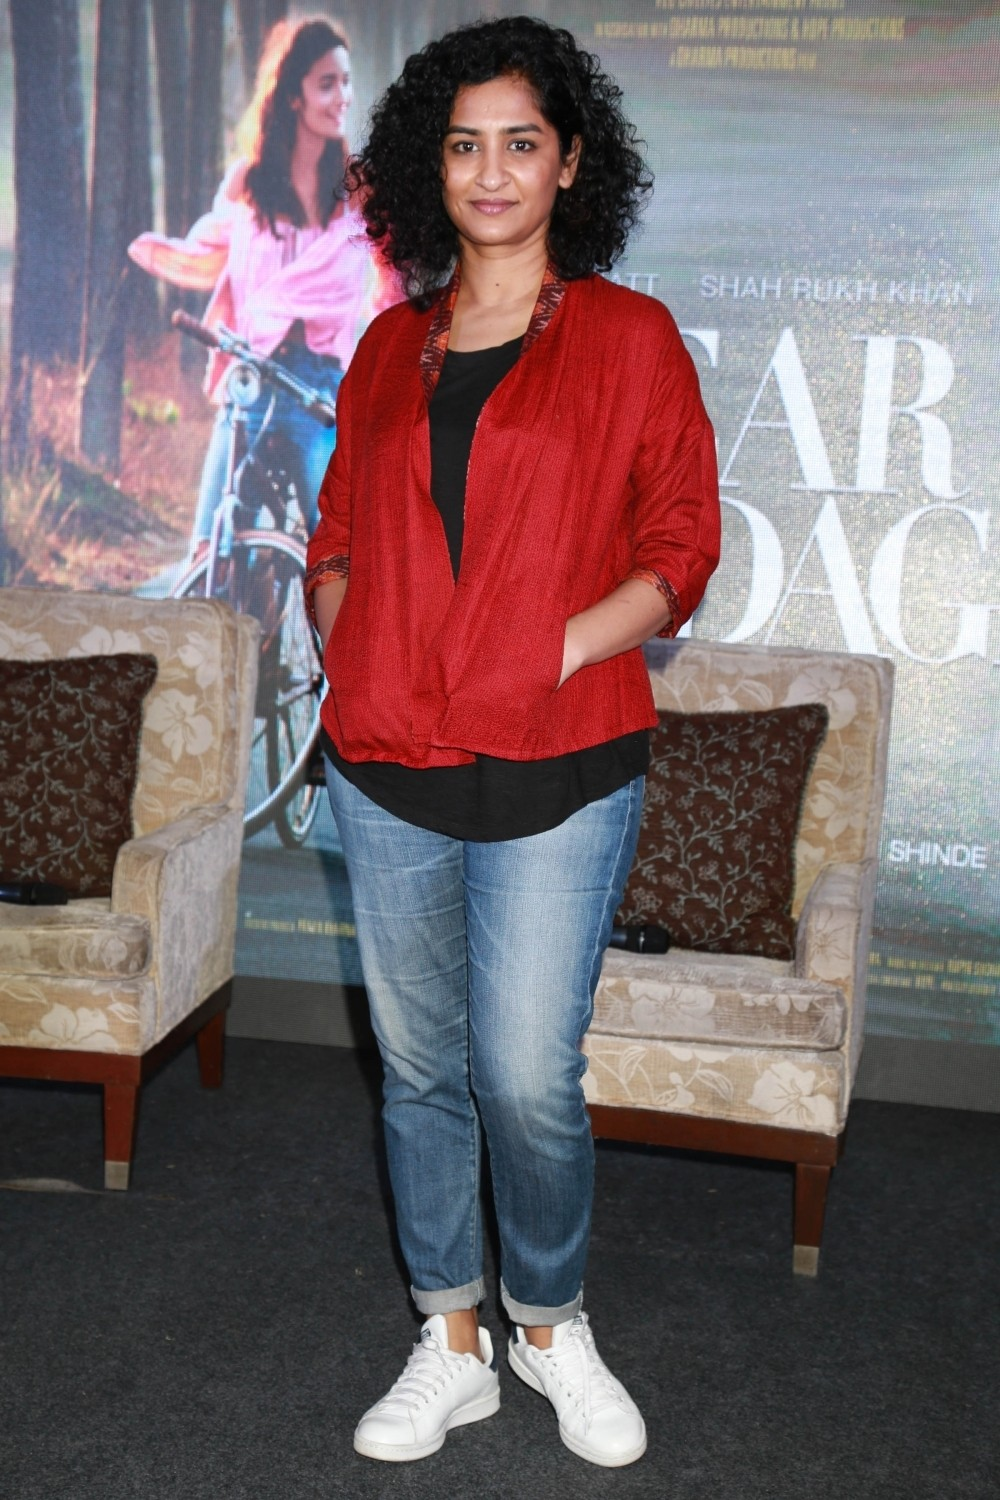 Shah Rukh Khan,Alia Bhatt,Gauri Shinde,Dear Zindagi,Dear Zindagi promotion,Dear Zindagi movie promotion,Dear Zindagi promotion in Delhi,Dear Zindagi movie promotion in Delhi,Shah Rukh Khan and Alia Bhatt